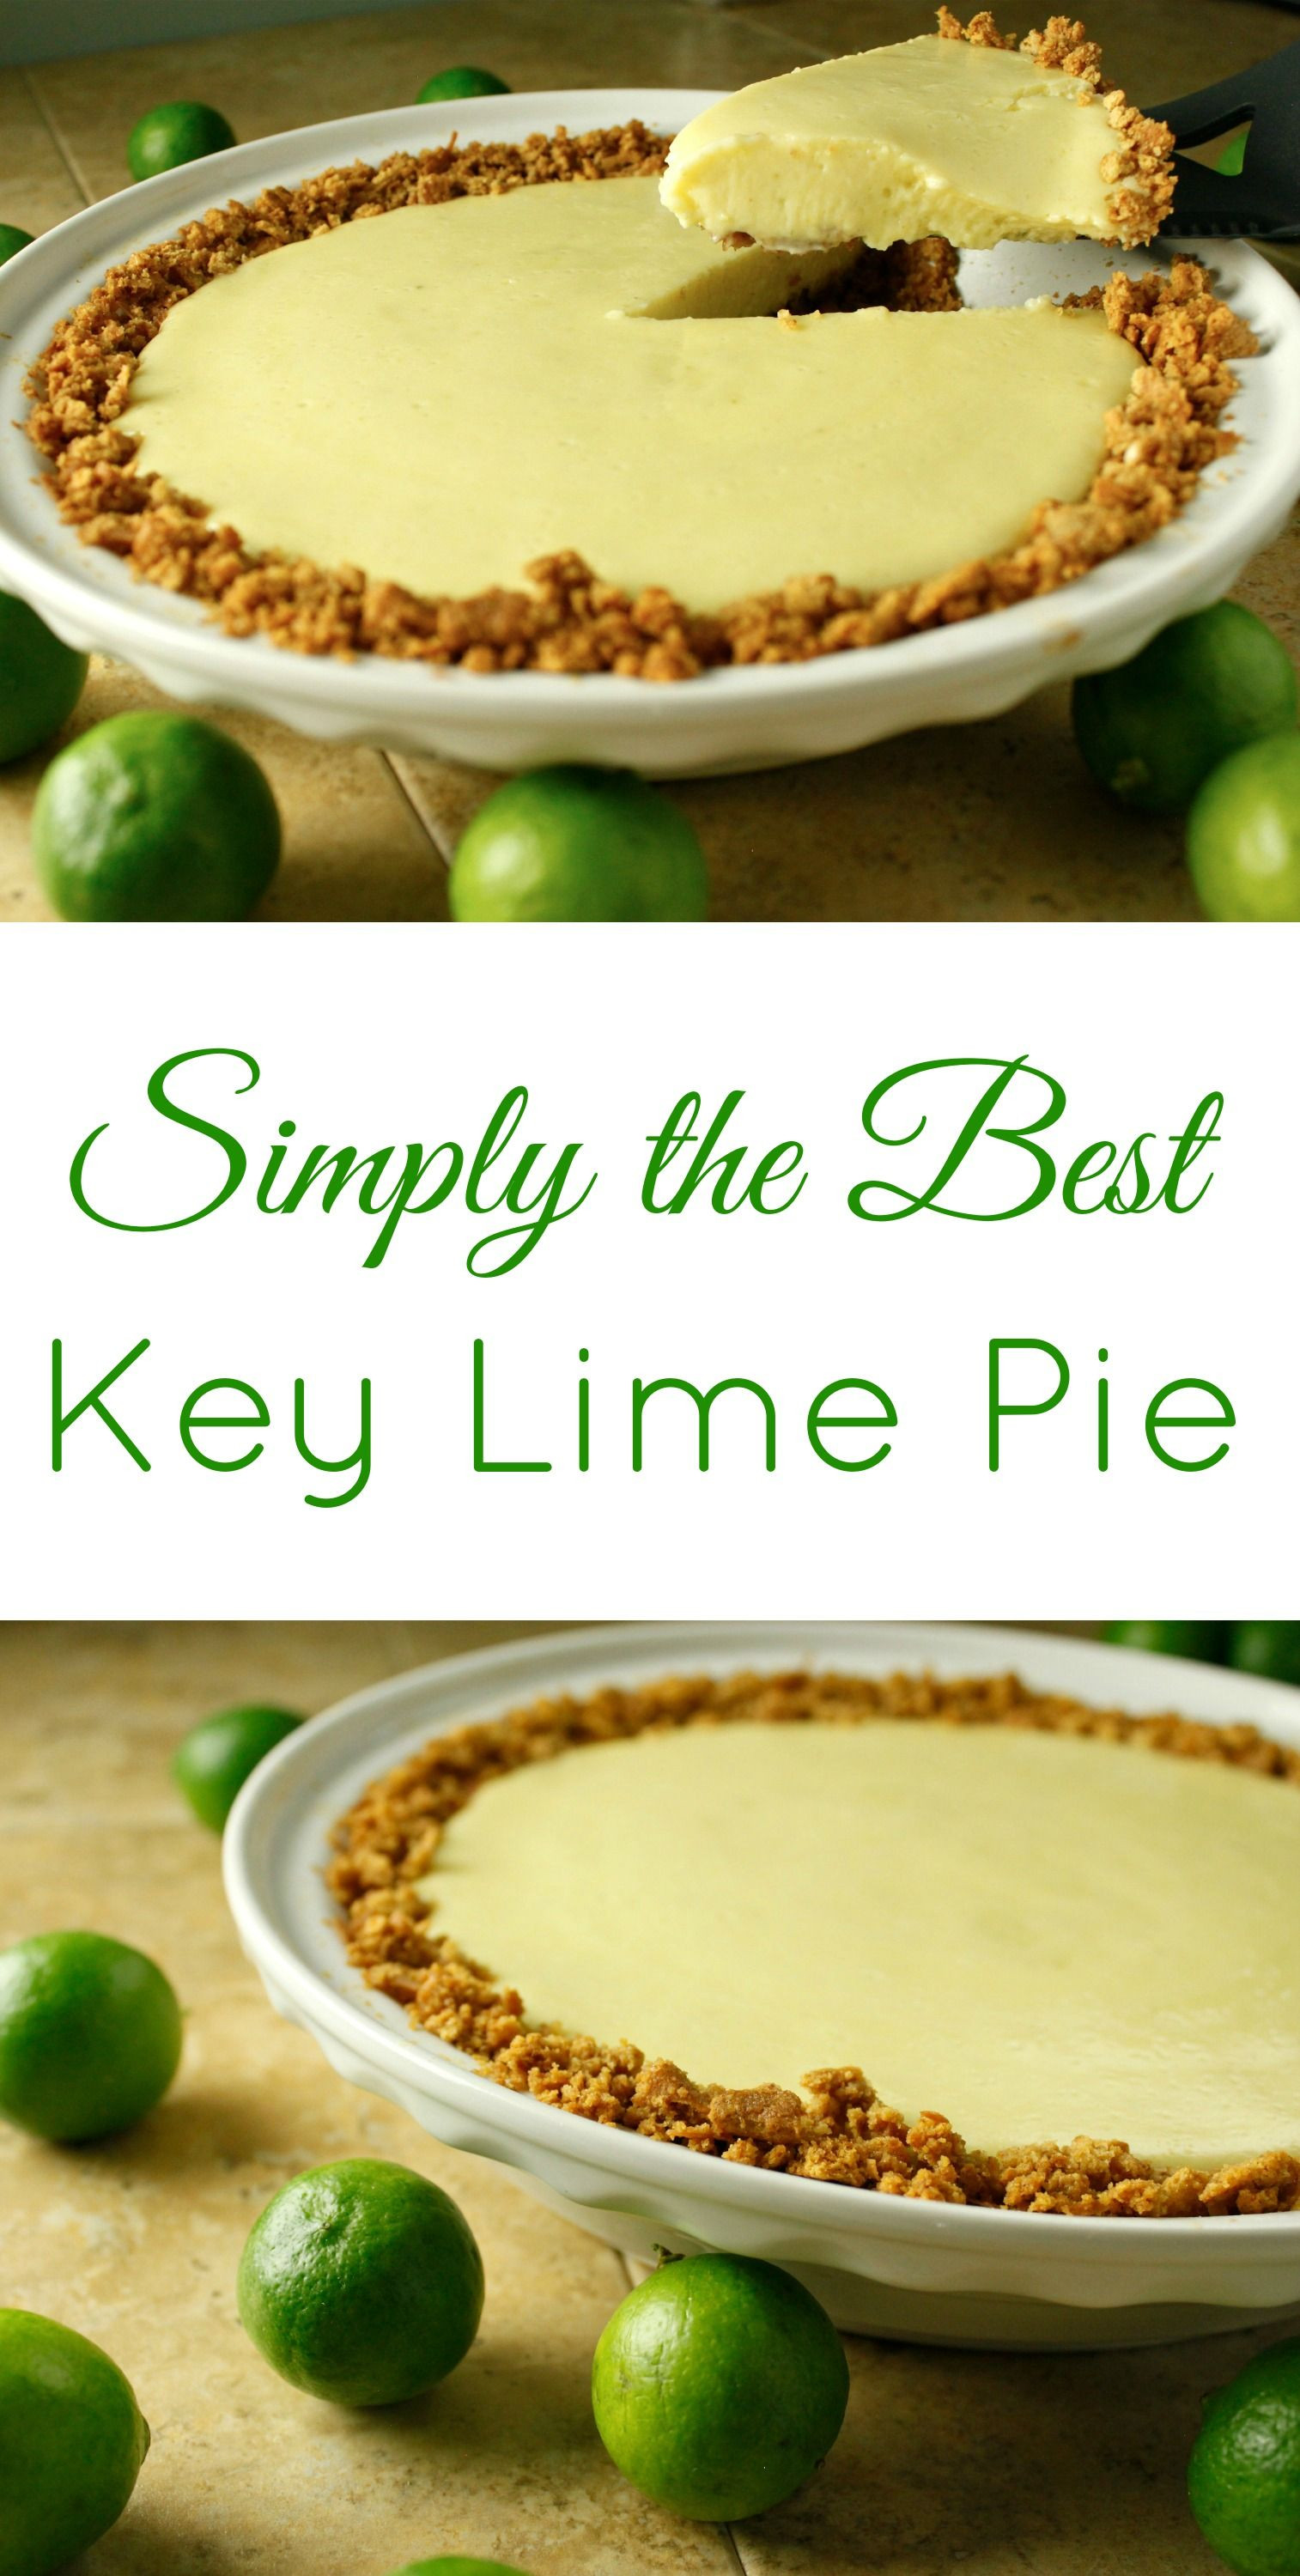 Best Key Lime Pie Recipe  Simply the Best Key Lime Pie Recipe I ve found This